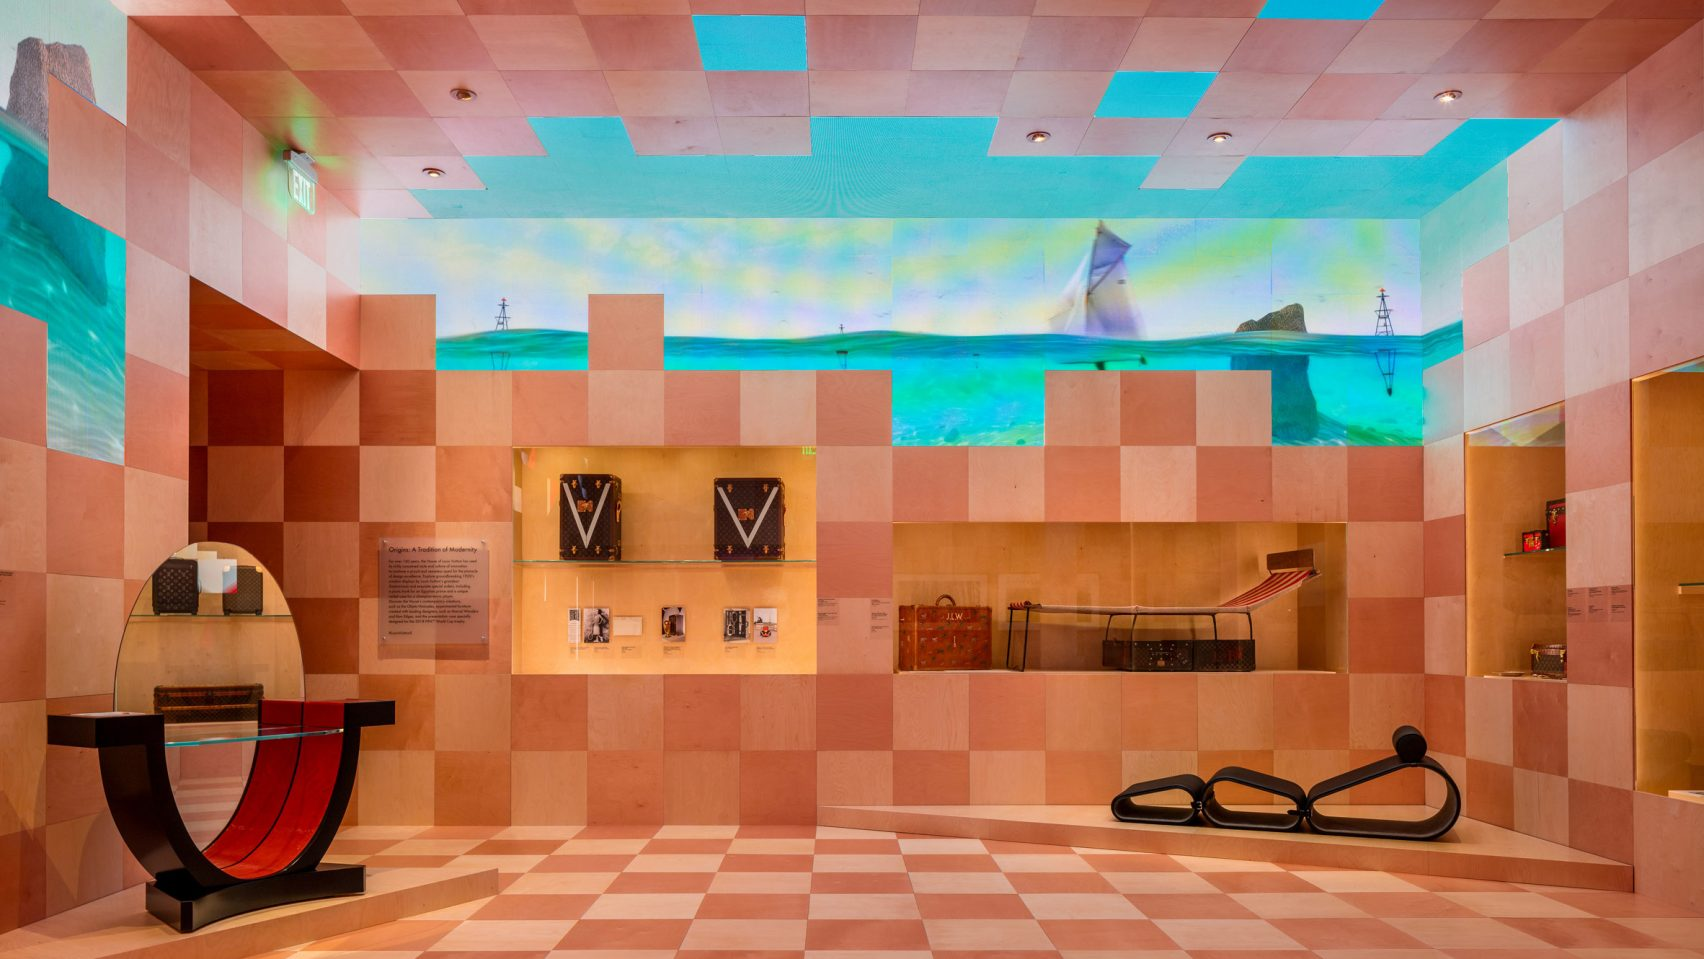 Louis Vuitton Exhibition Celebrates 160 Years of Design Collaborations louis vuitton exhibition Louis Vuitton Exhibition Celebrates 160 Years of Design Collaborations louis vuitton x exhibit design fashion los angeles california usa dezeen 2364 hero 1704x959